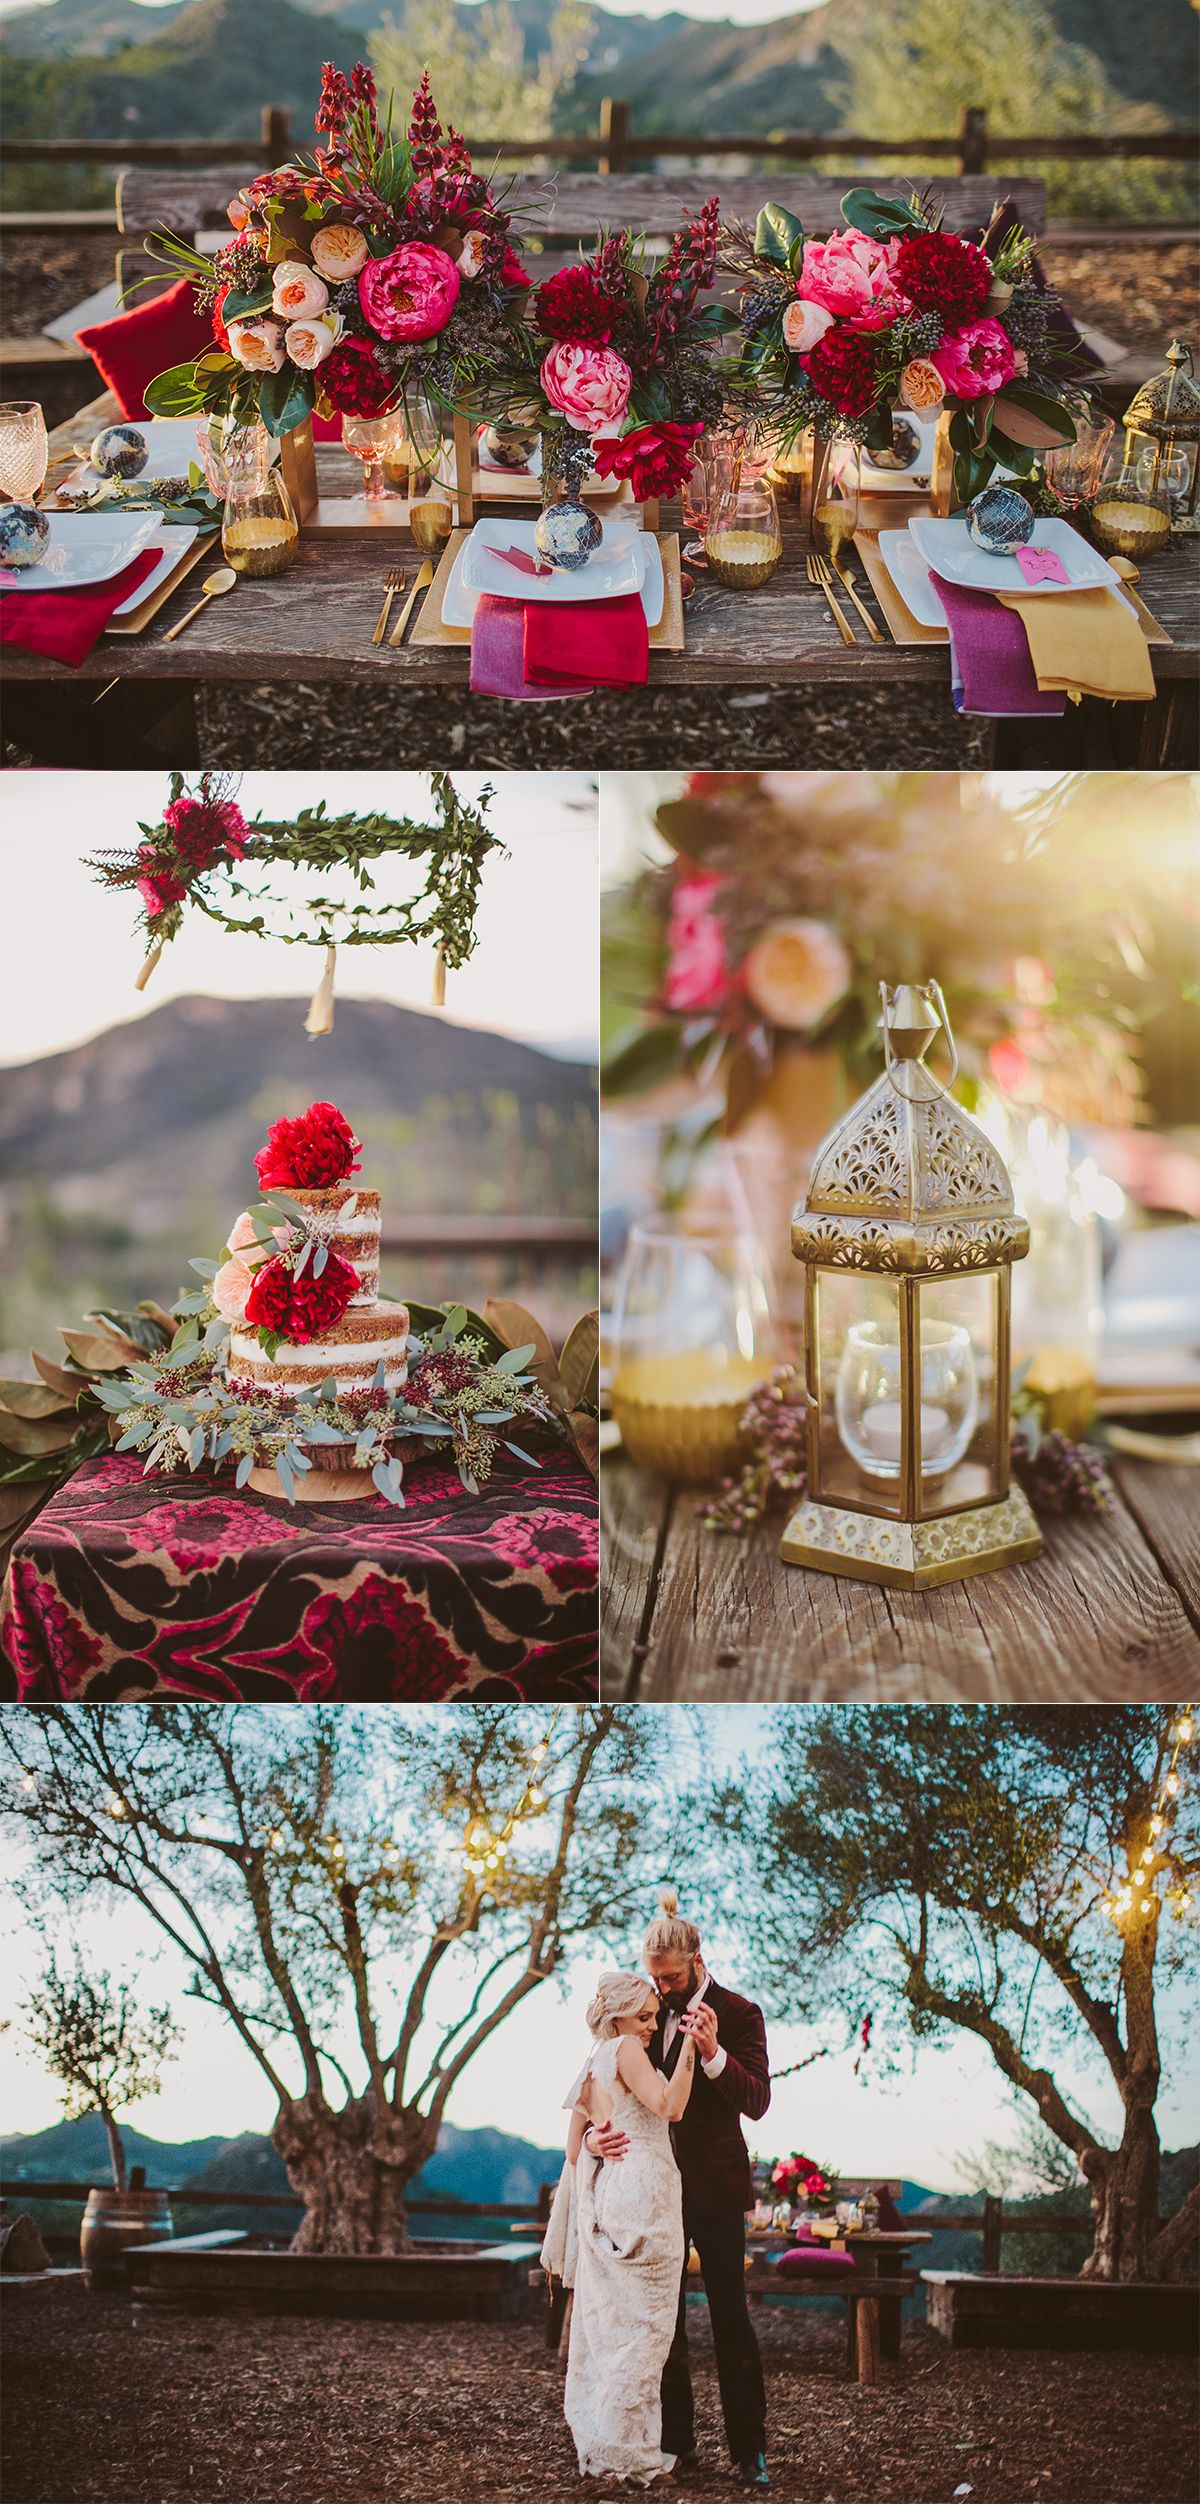 a whimiscal bohemian wedding at cielo farms venue in malibu bohemian pinterest hochzeit. Black Bedroom Furniture Sets. Home Design Ideas